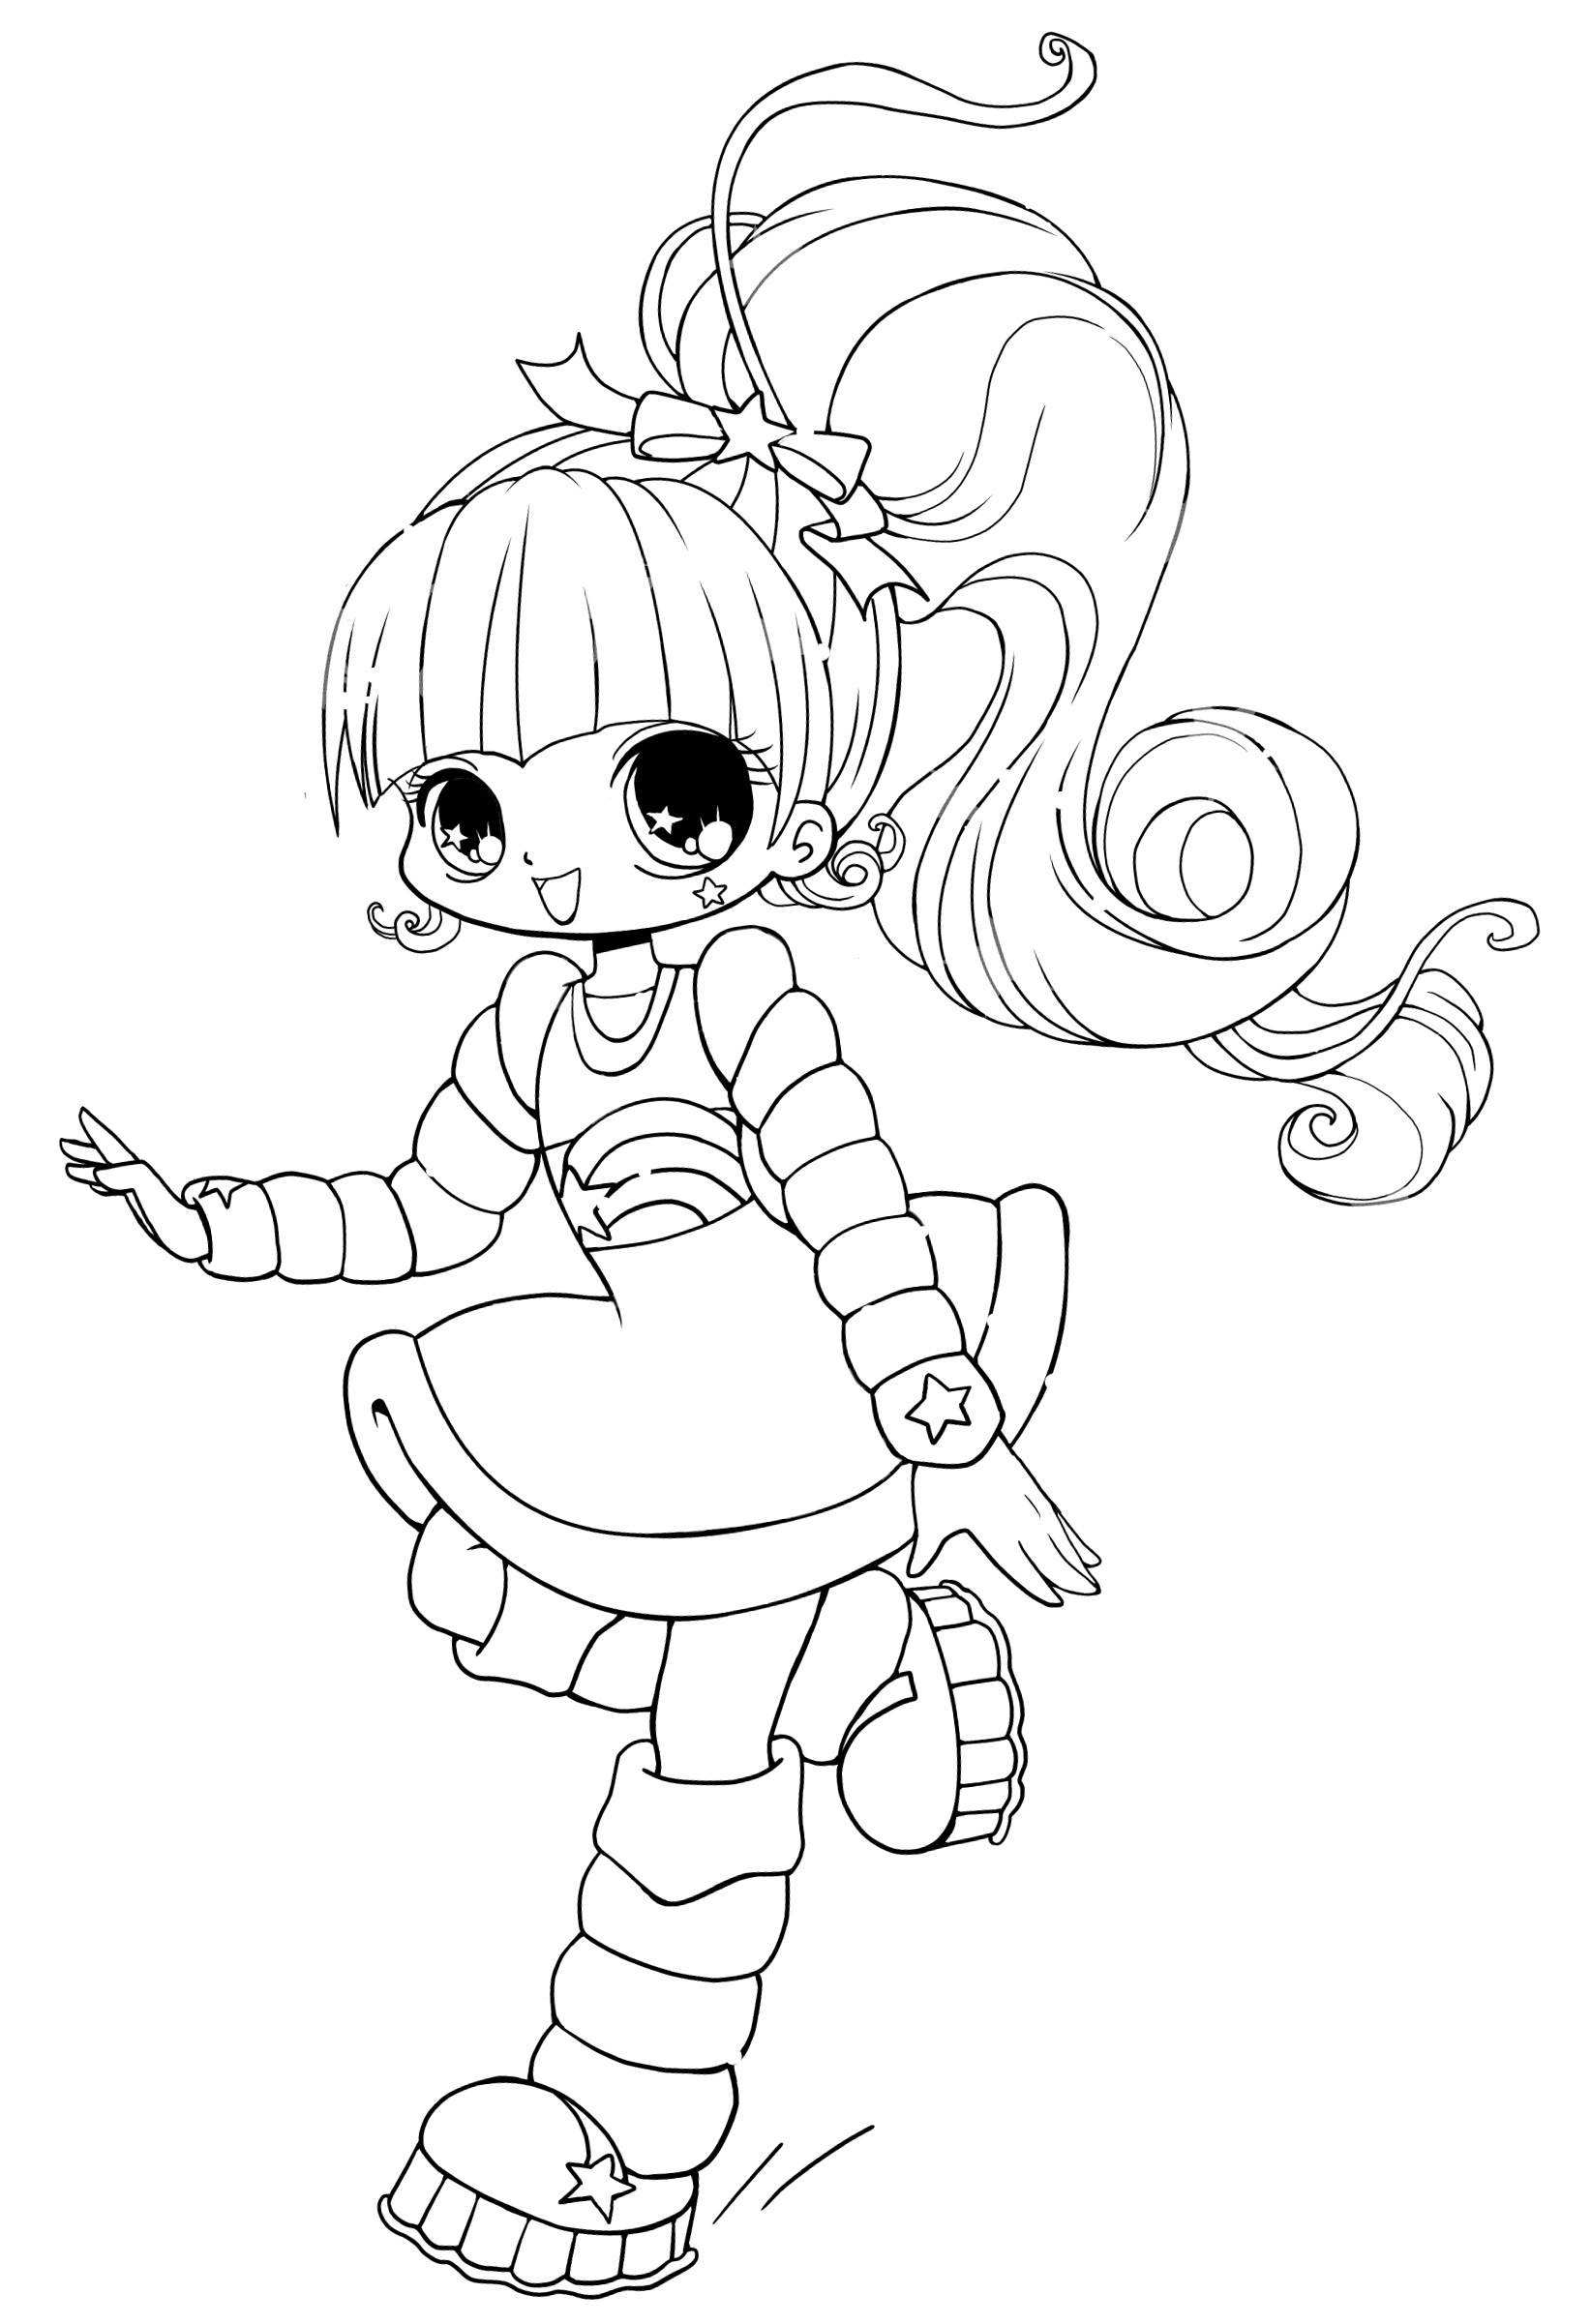 coloring anime pictures anime coloring pages best coloring pages for kids anime coloring pictures 1 1